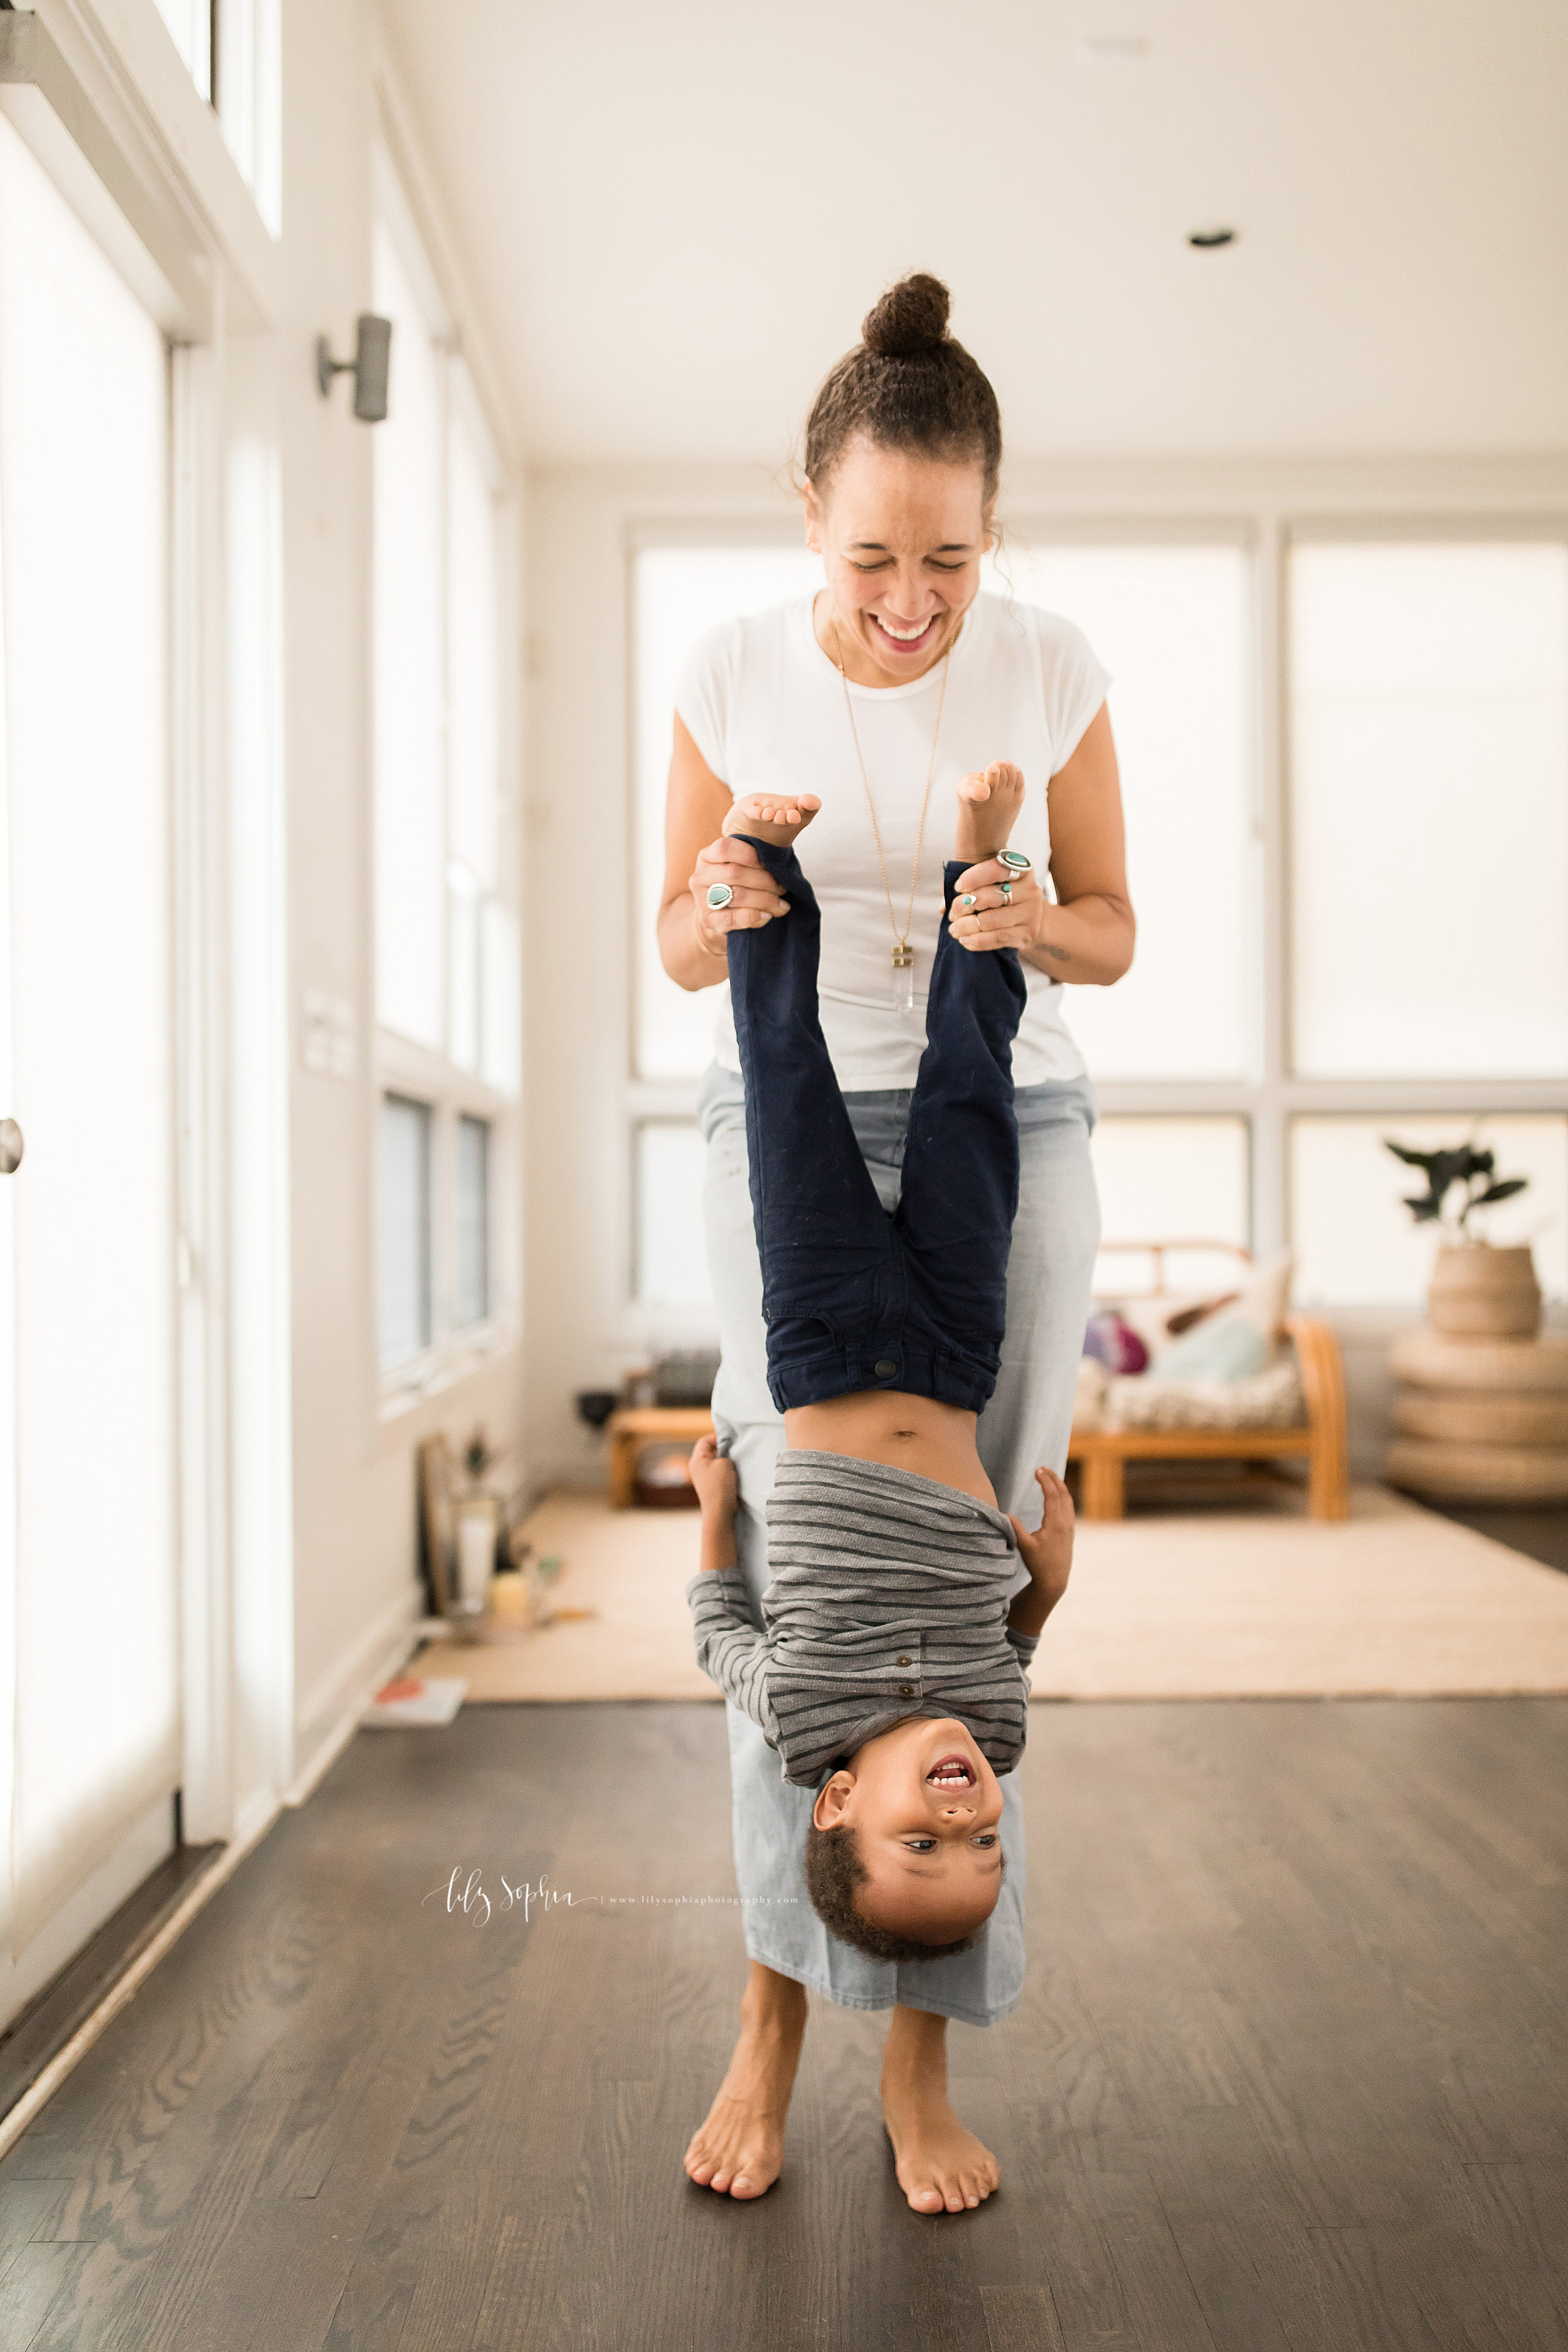 atlanta-midtown-inman-grant-park-beltline-old-fourth-ward-lily-sophia-photography-in-home-lifestyle-mommy-and-me-session-family-photographer-toddler-boy_0435.jpg